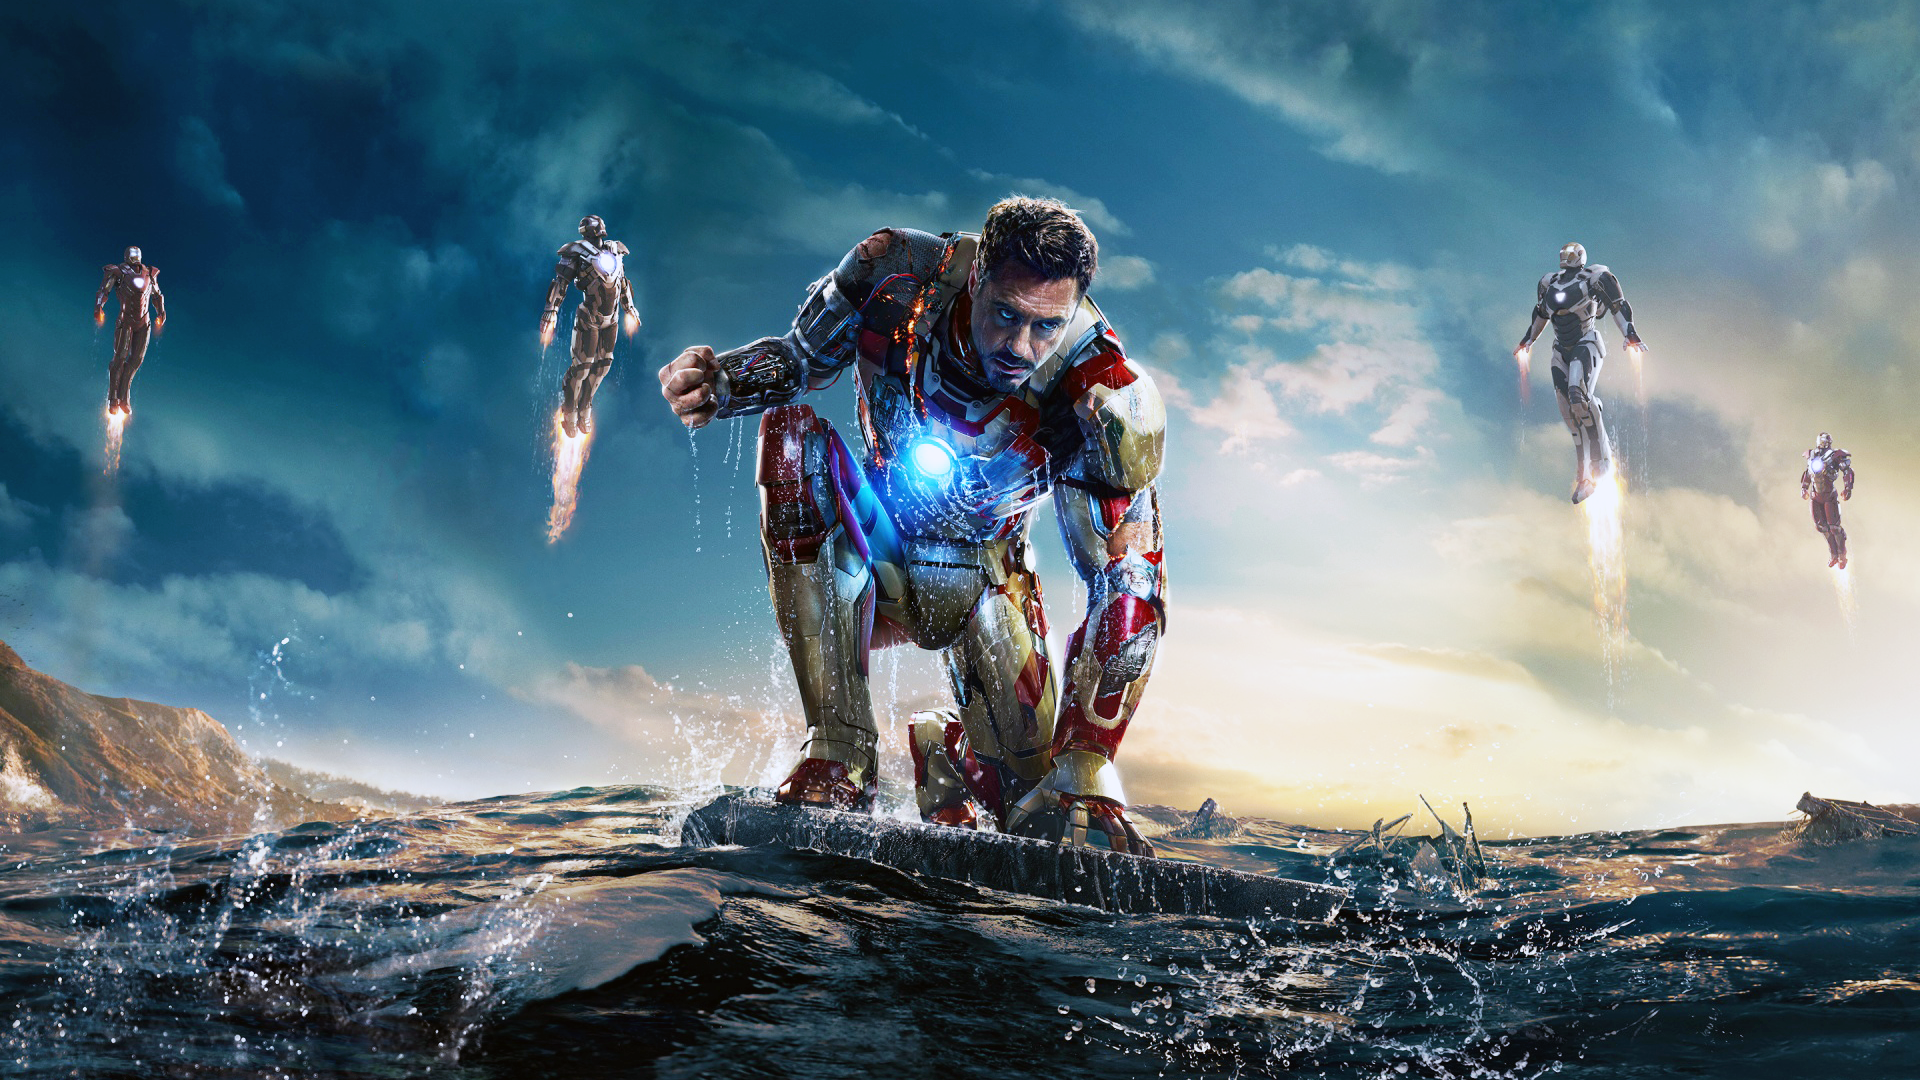 iron man 3 mark 42 wallpaper by xbullitt68 customization wallpaper    Iron Man 3 Poster Wallpaper Mark 42